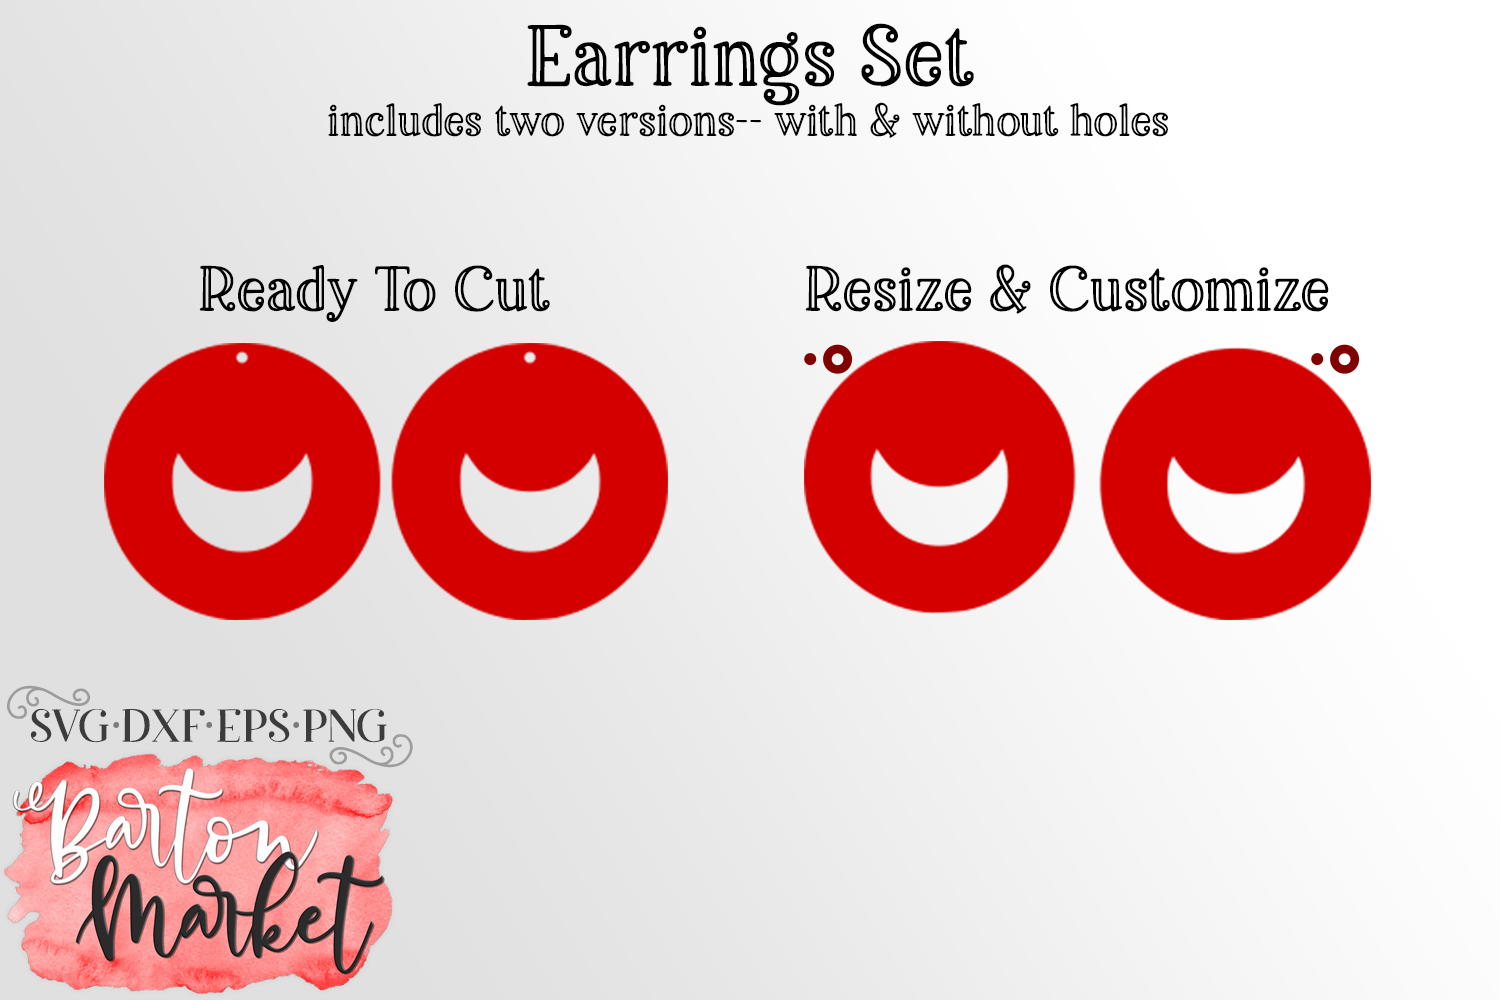 Earrings Set Circles With Moon SVG DXF EPS PNG example image 2